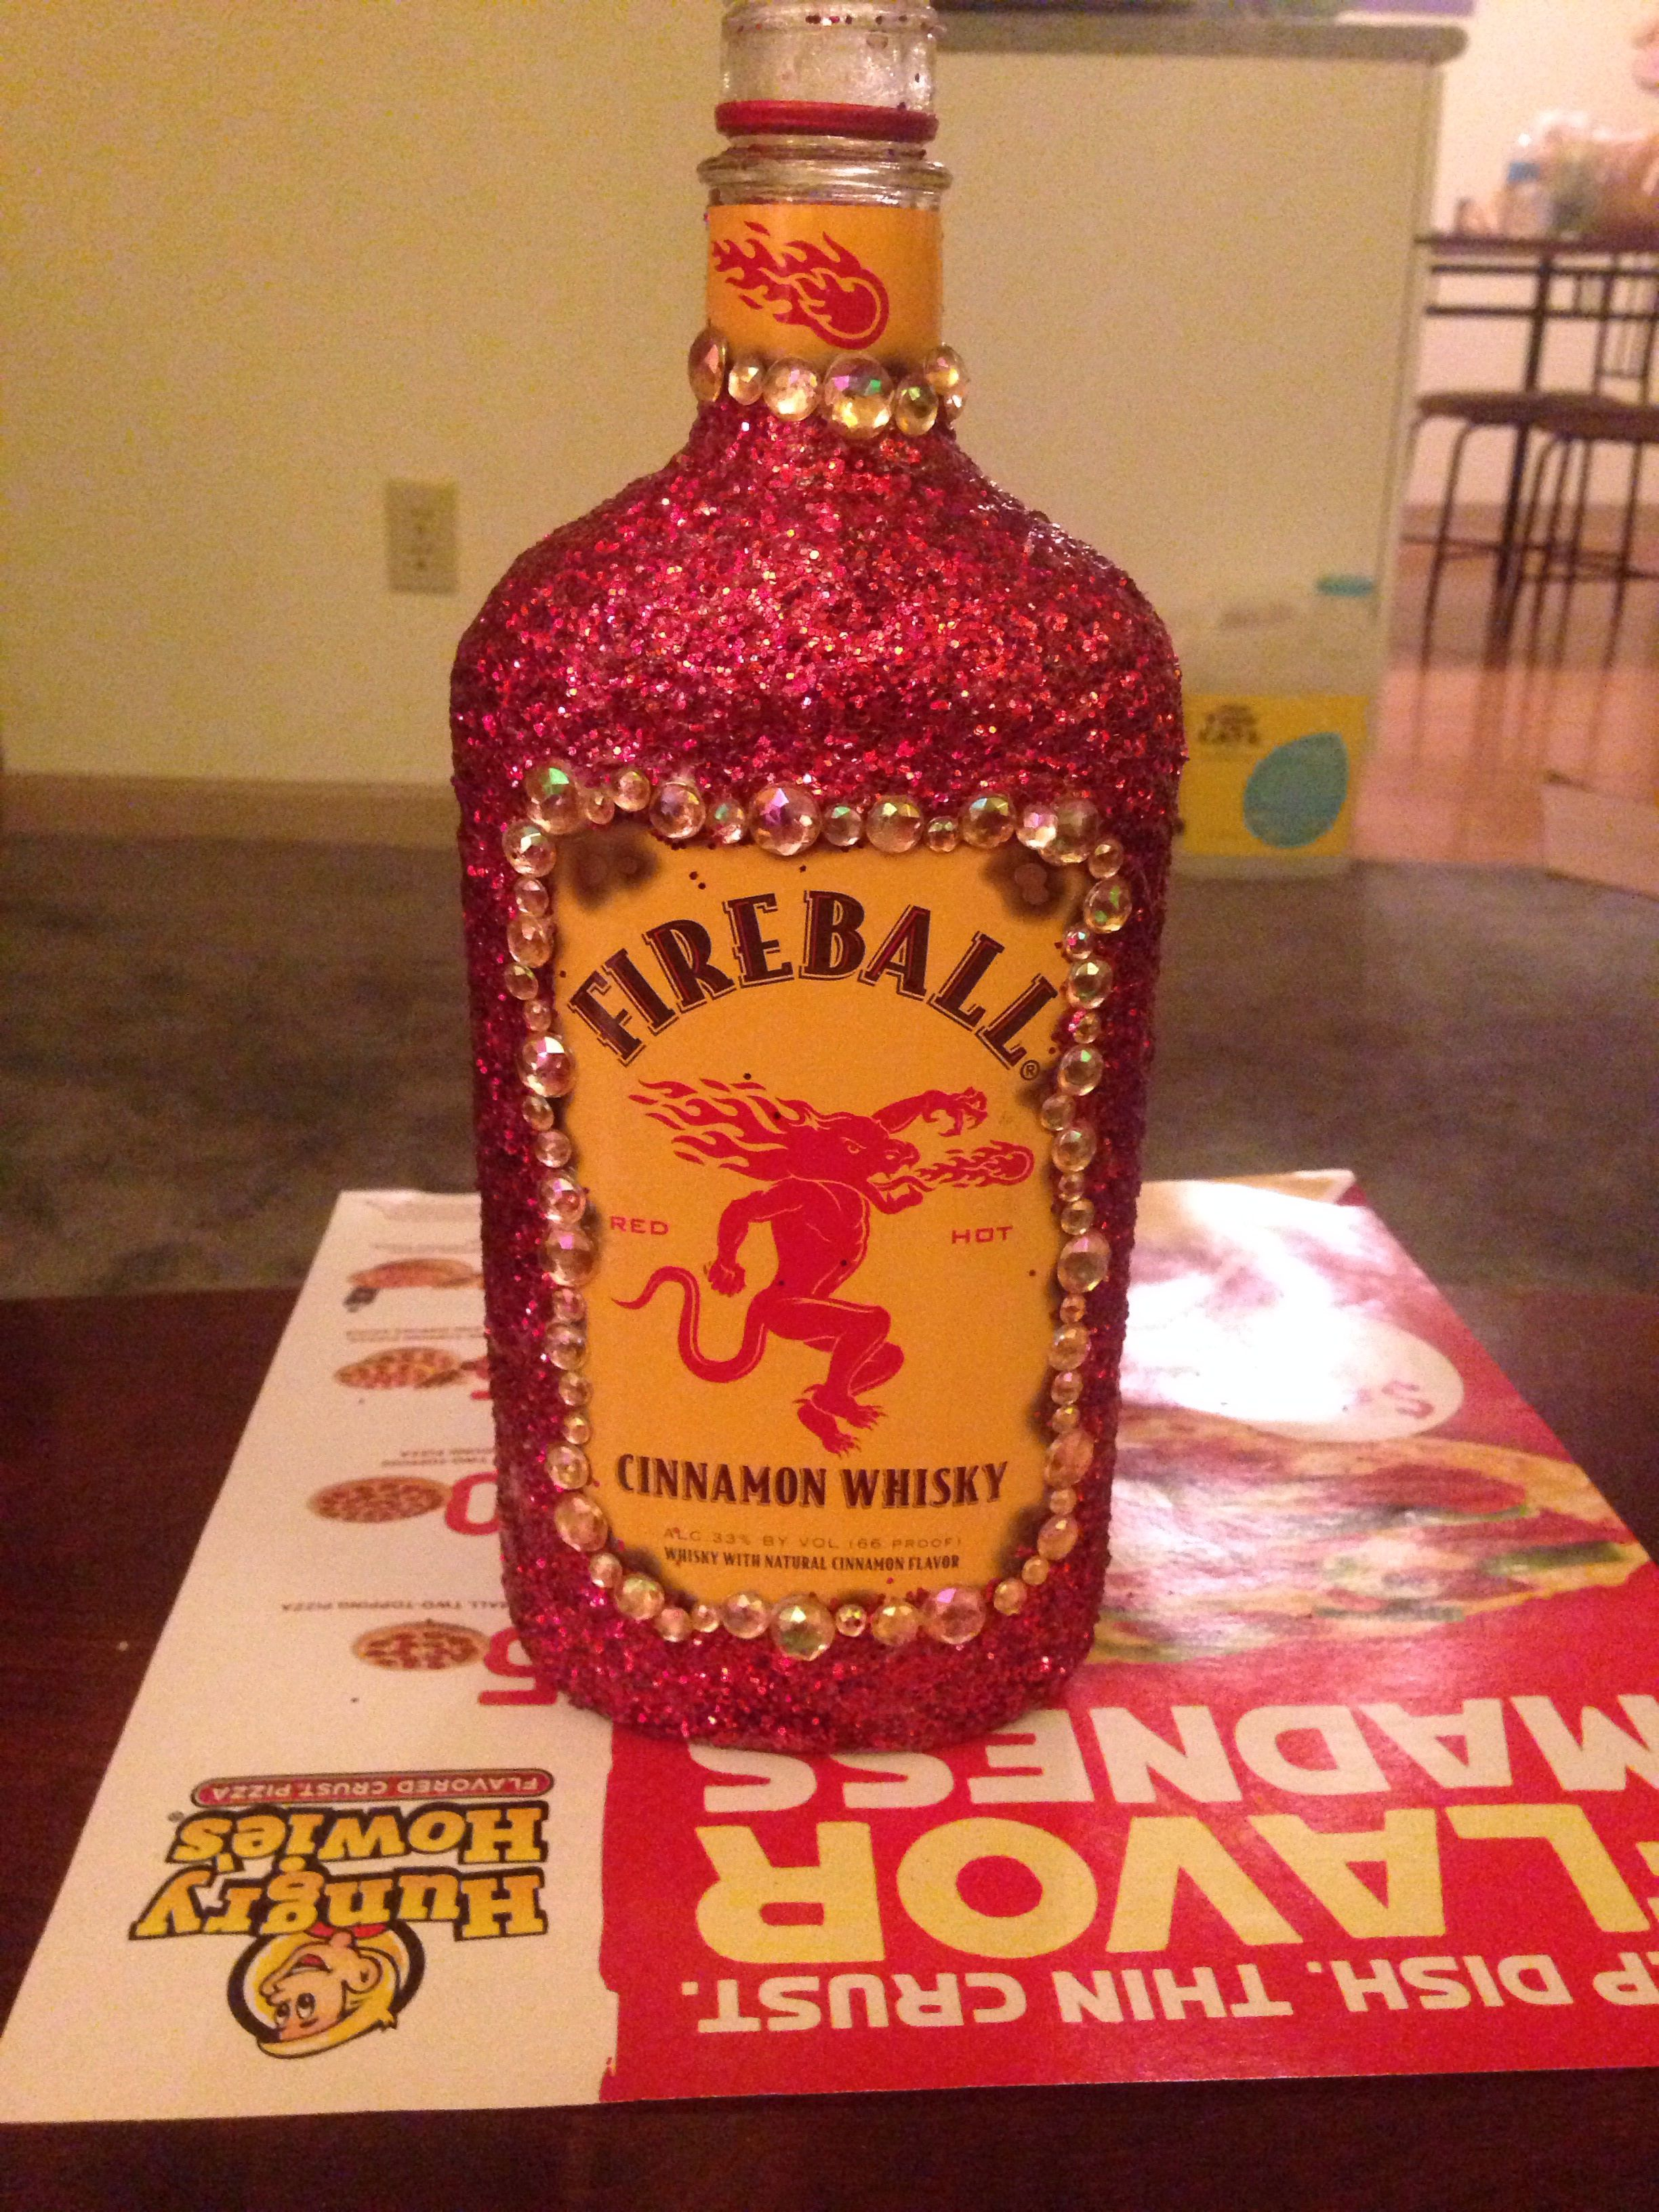 No One Truly Understands My Love For Fireball Whisky Fireball Bottle 21st Birthday Glitter Crafts